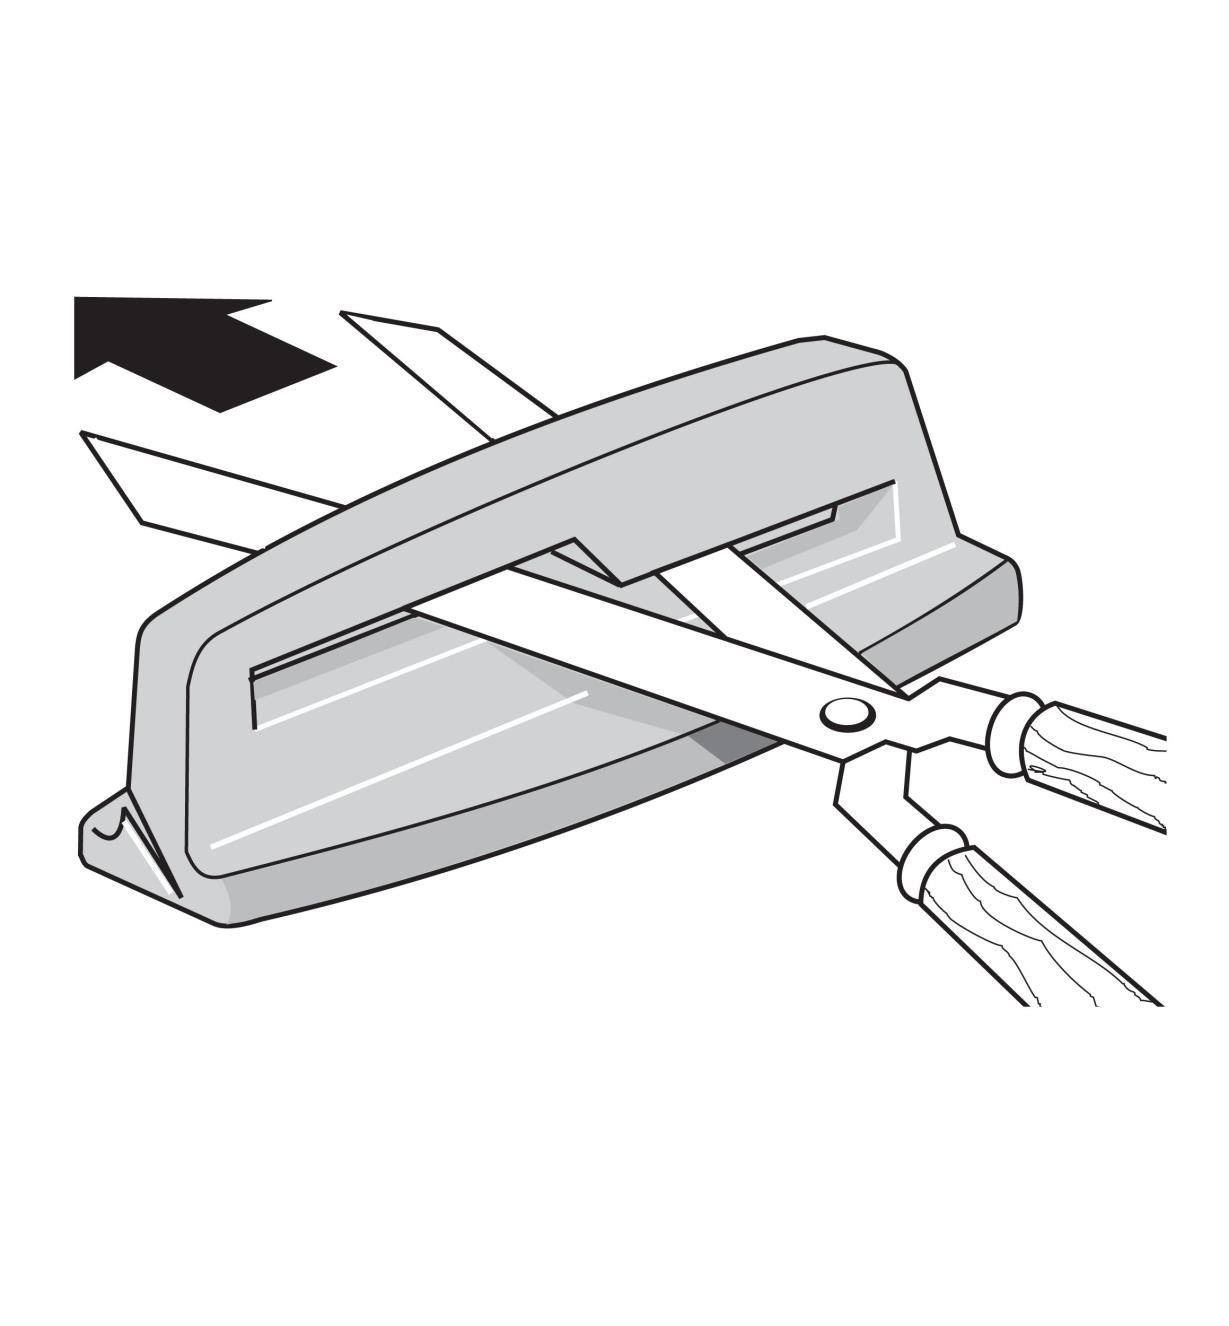 Illustration of shears being inserted into the sharpener